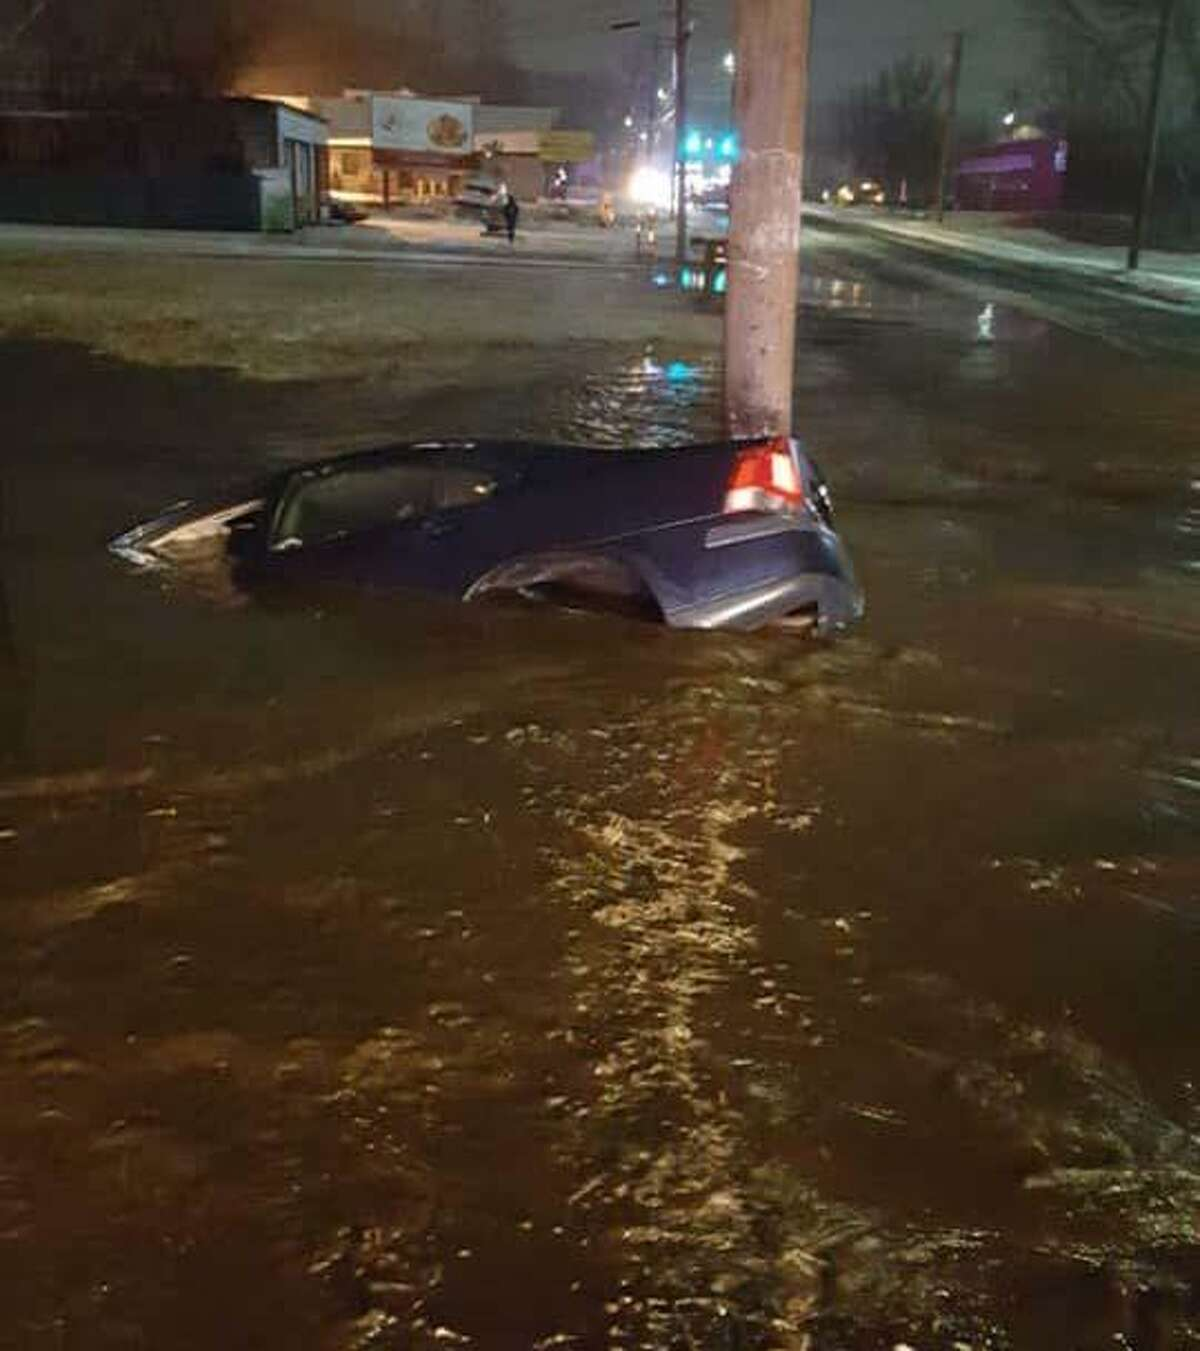 Quinnipiac Avenue in North Haven is still closed due to a car into a fire hydrant accident that occurred Wednesday night on Feb. 20, 2019, police said. The car struck the hydrant at 128 Quinnipiac Ave, at about 8 p.m. immediately causing the road to flood, police said. The car was nearly submerged in a large puddle when responders arrived. The driver did not appear to be injured, police said.